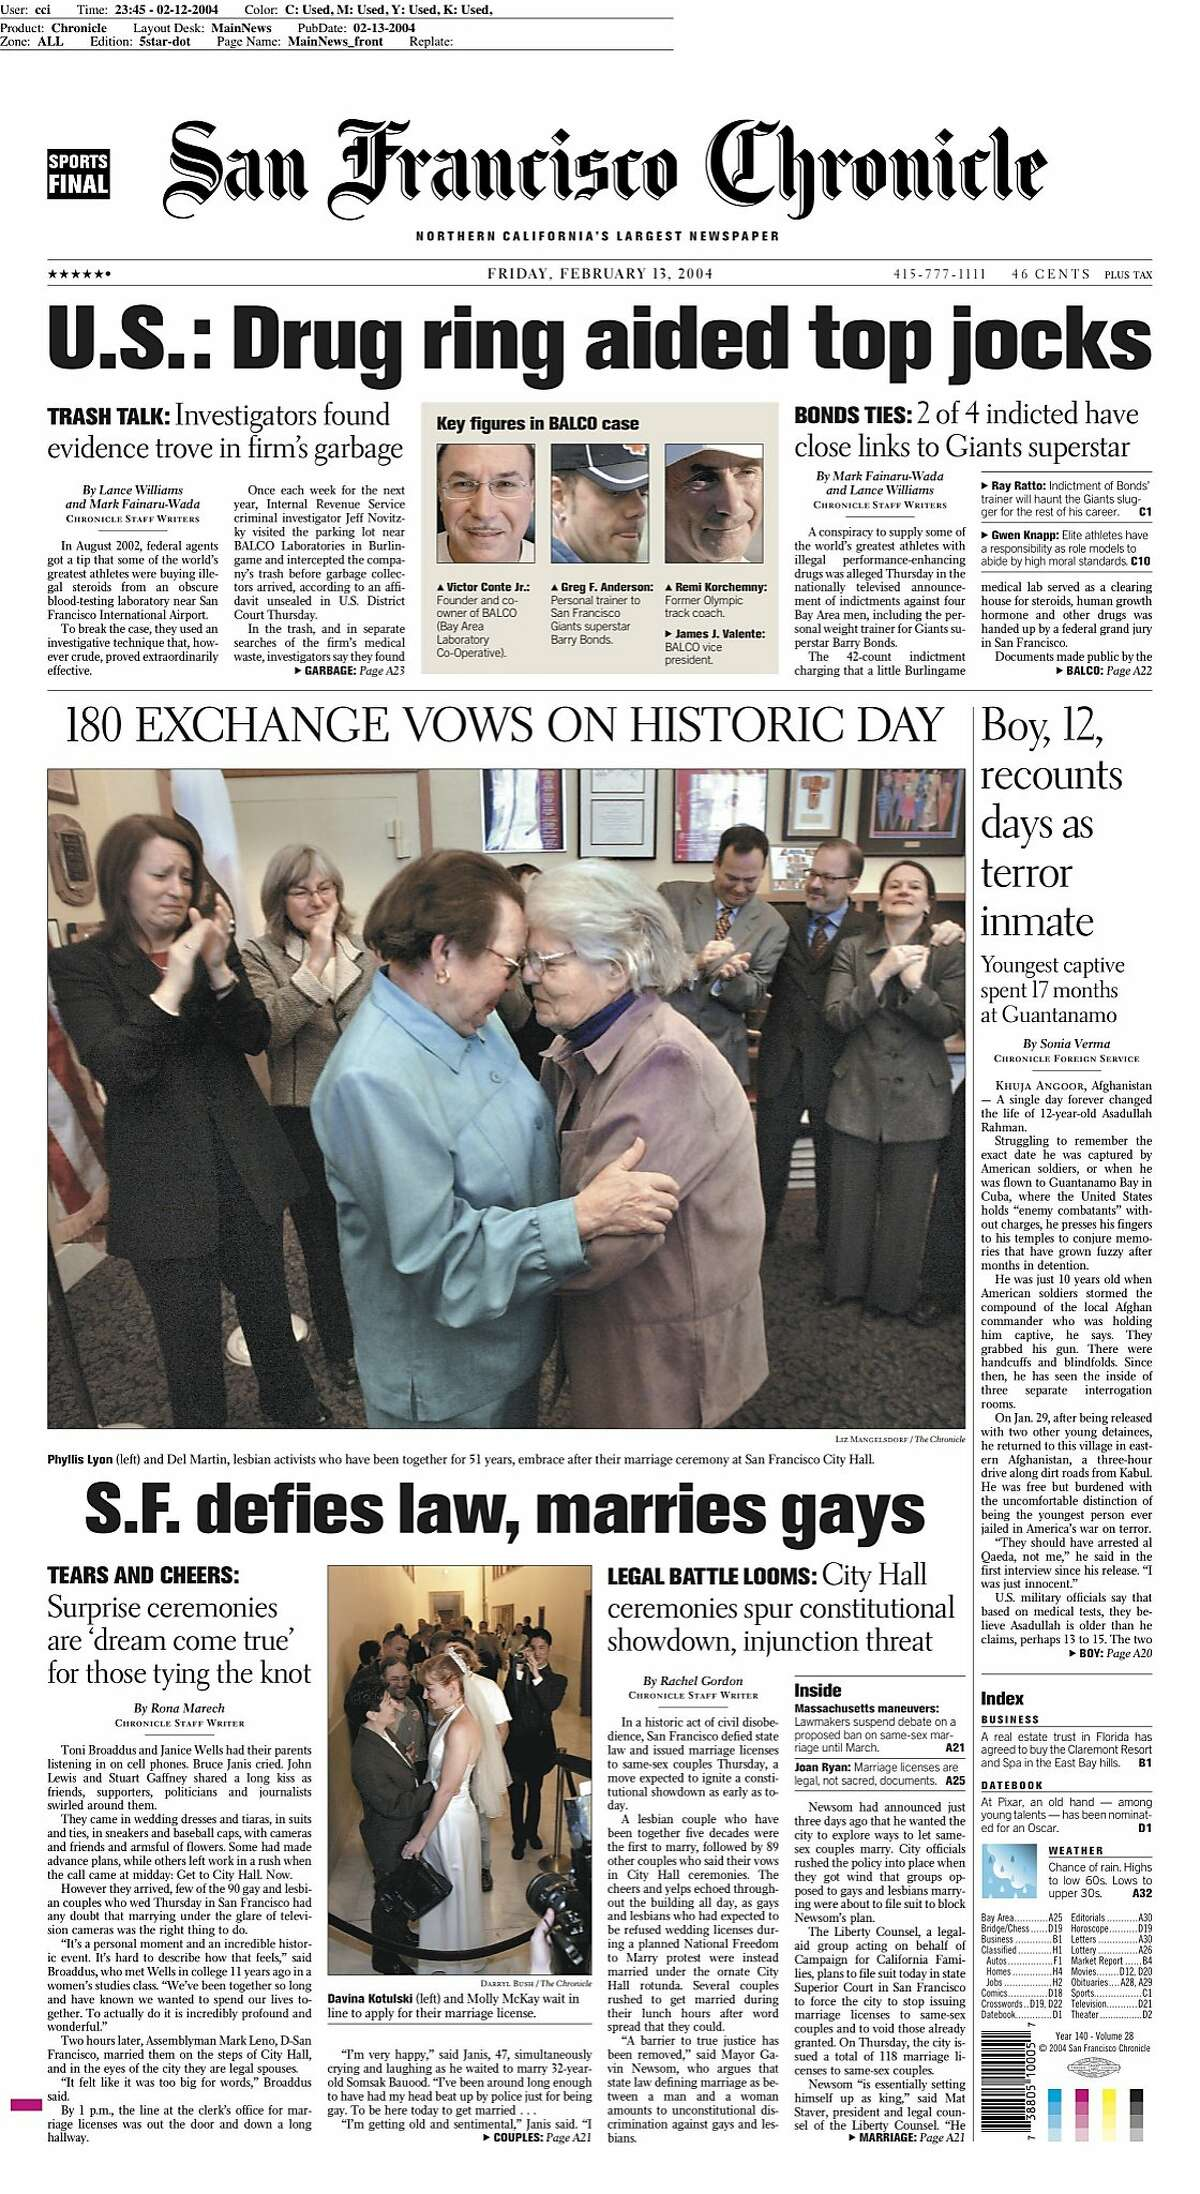 San Francisco's historic decision to defy state law was featured on the front page of Feb. 13, 2004.